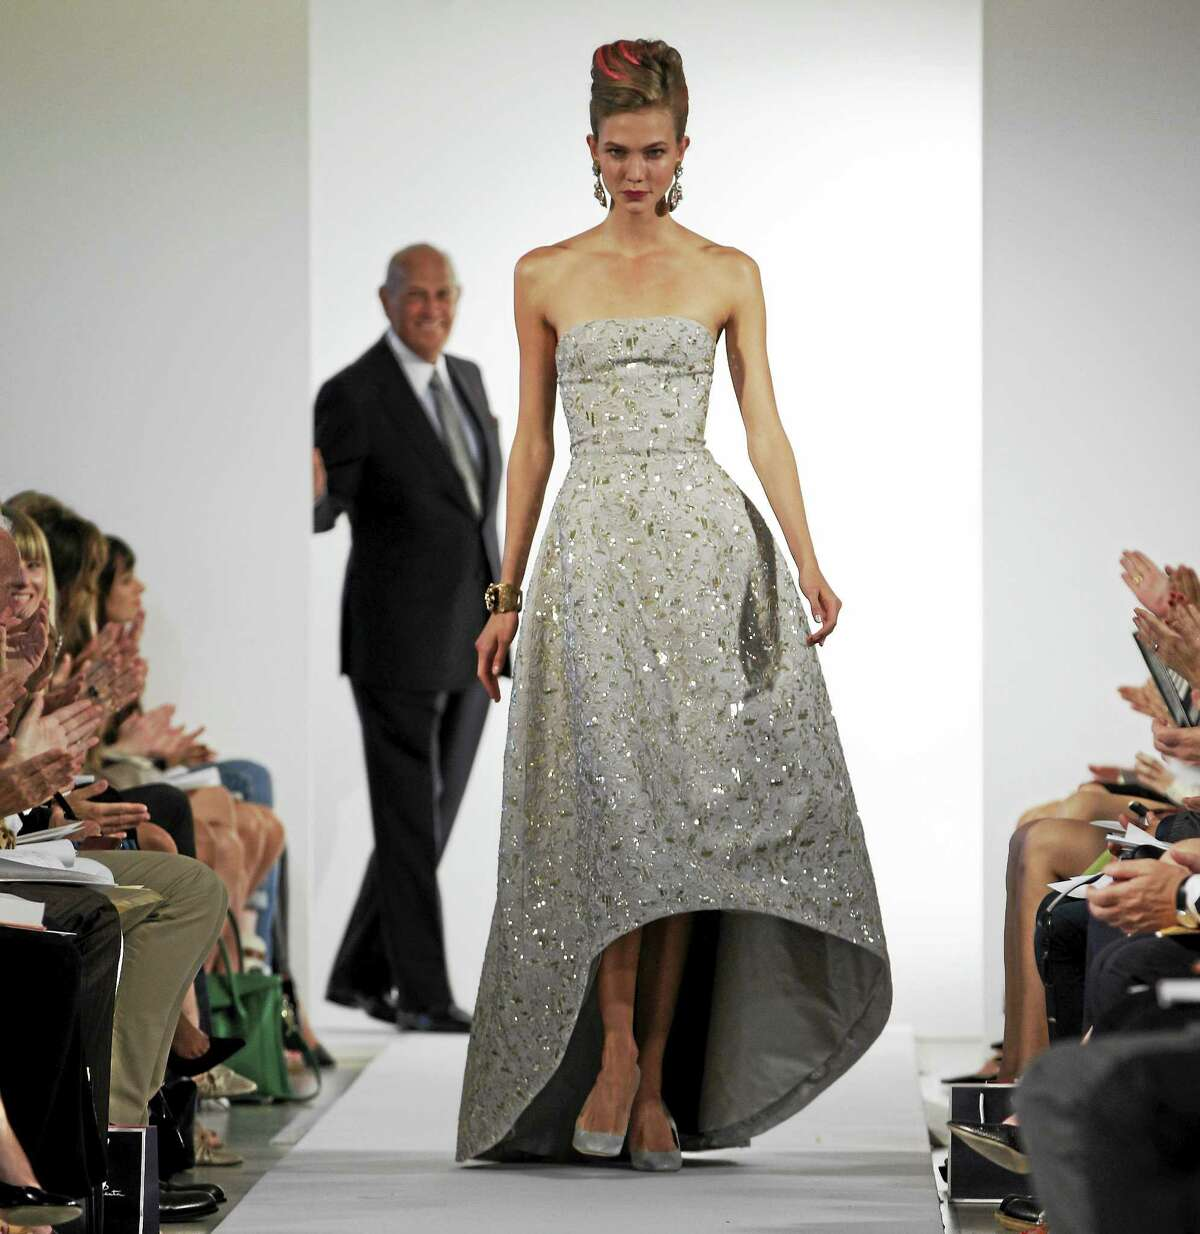 In this Sept. 11, 2012 photo, fashion designer Oscar de la Renta watches as the final model walks the runway during the presentation of his Spring 2013 collection at Fashion Week in New York.